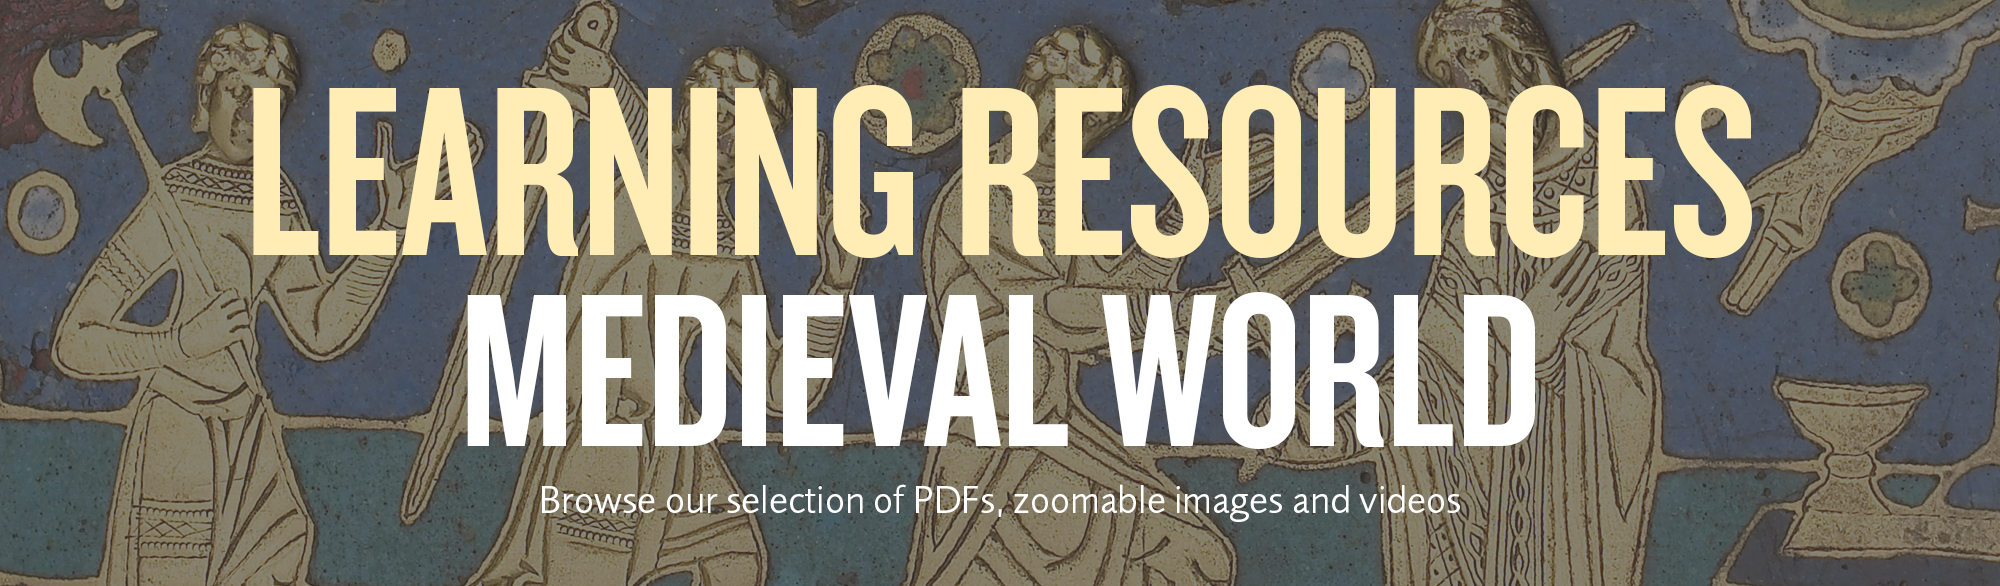 learning resource medieval world